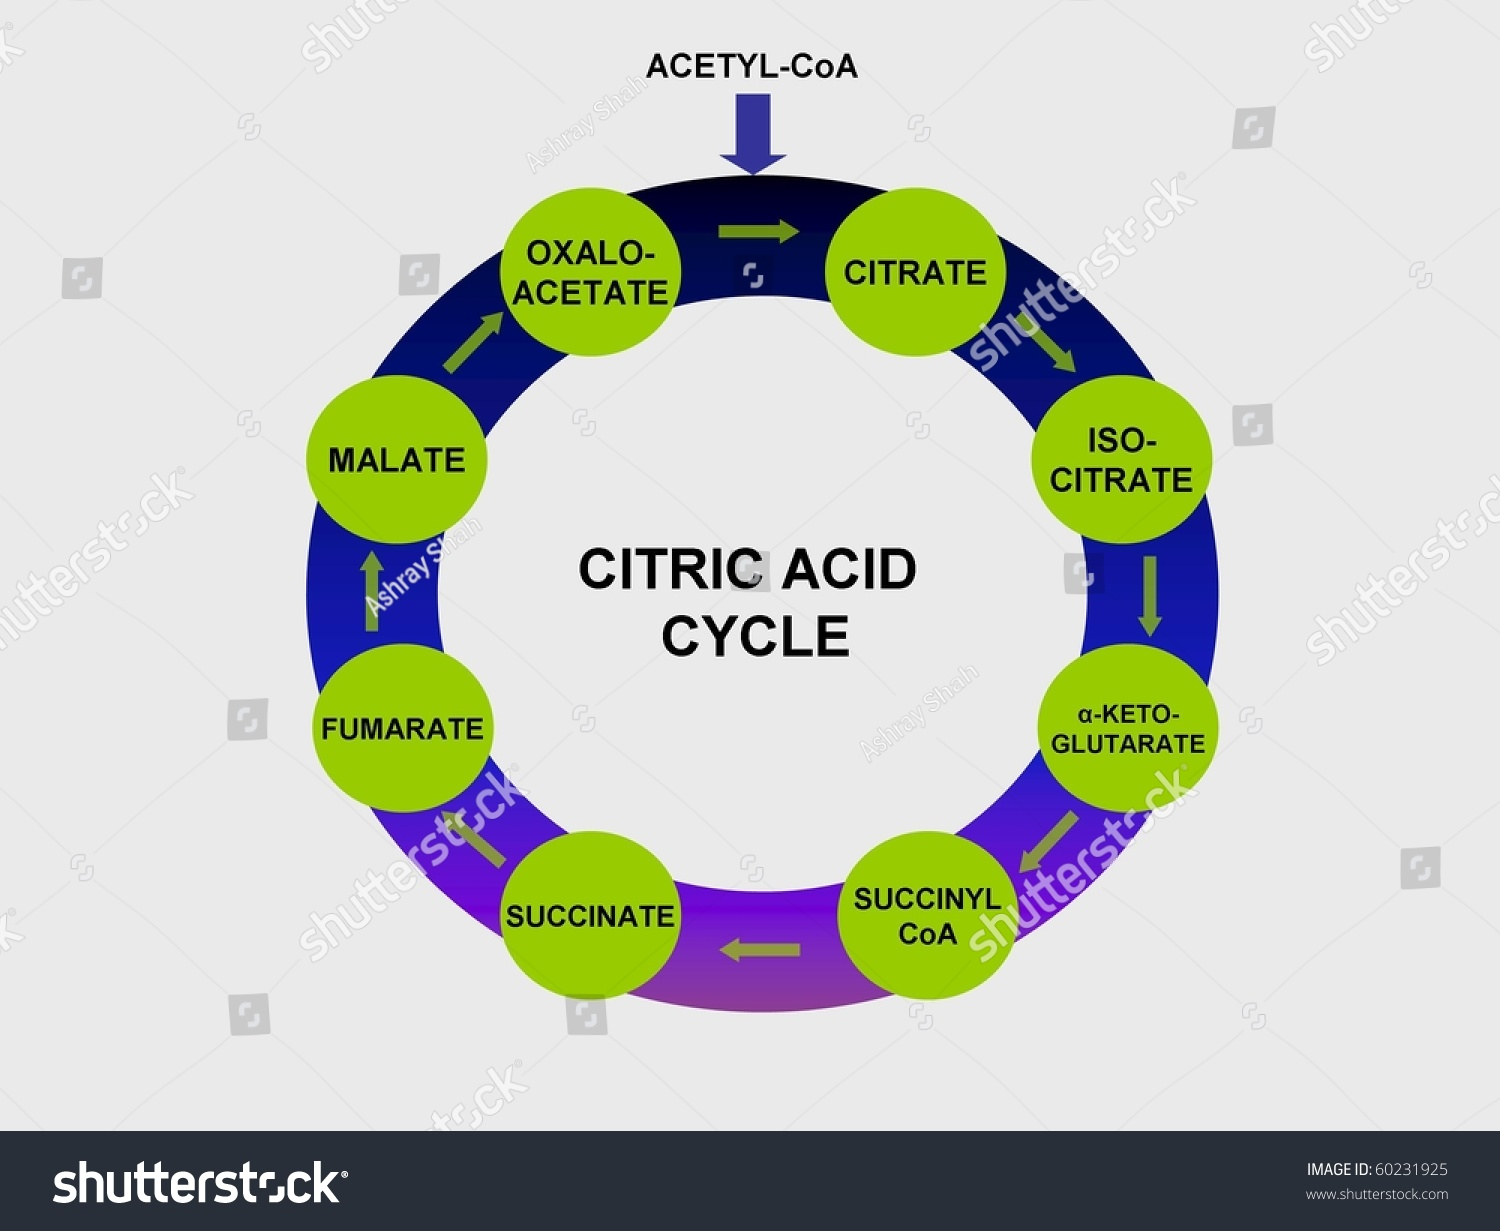 Citric Acid Cycle Stock Photo Shutterstock